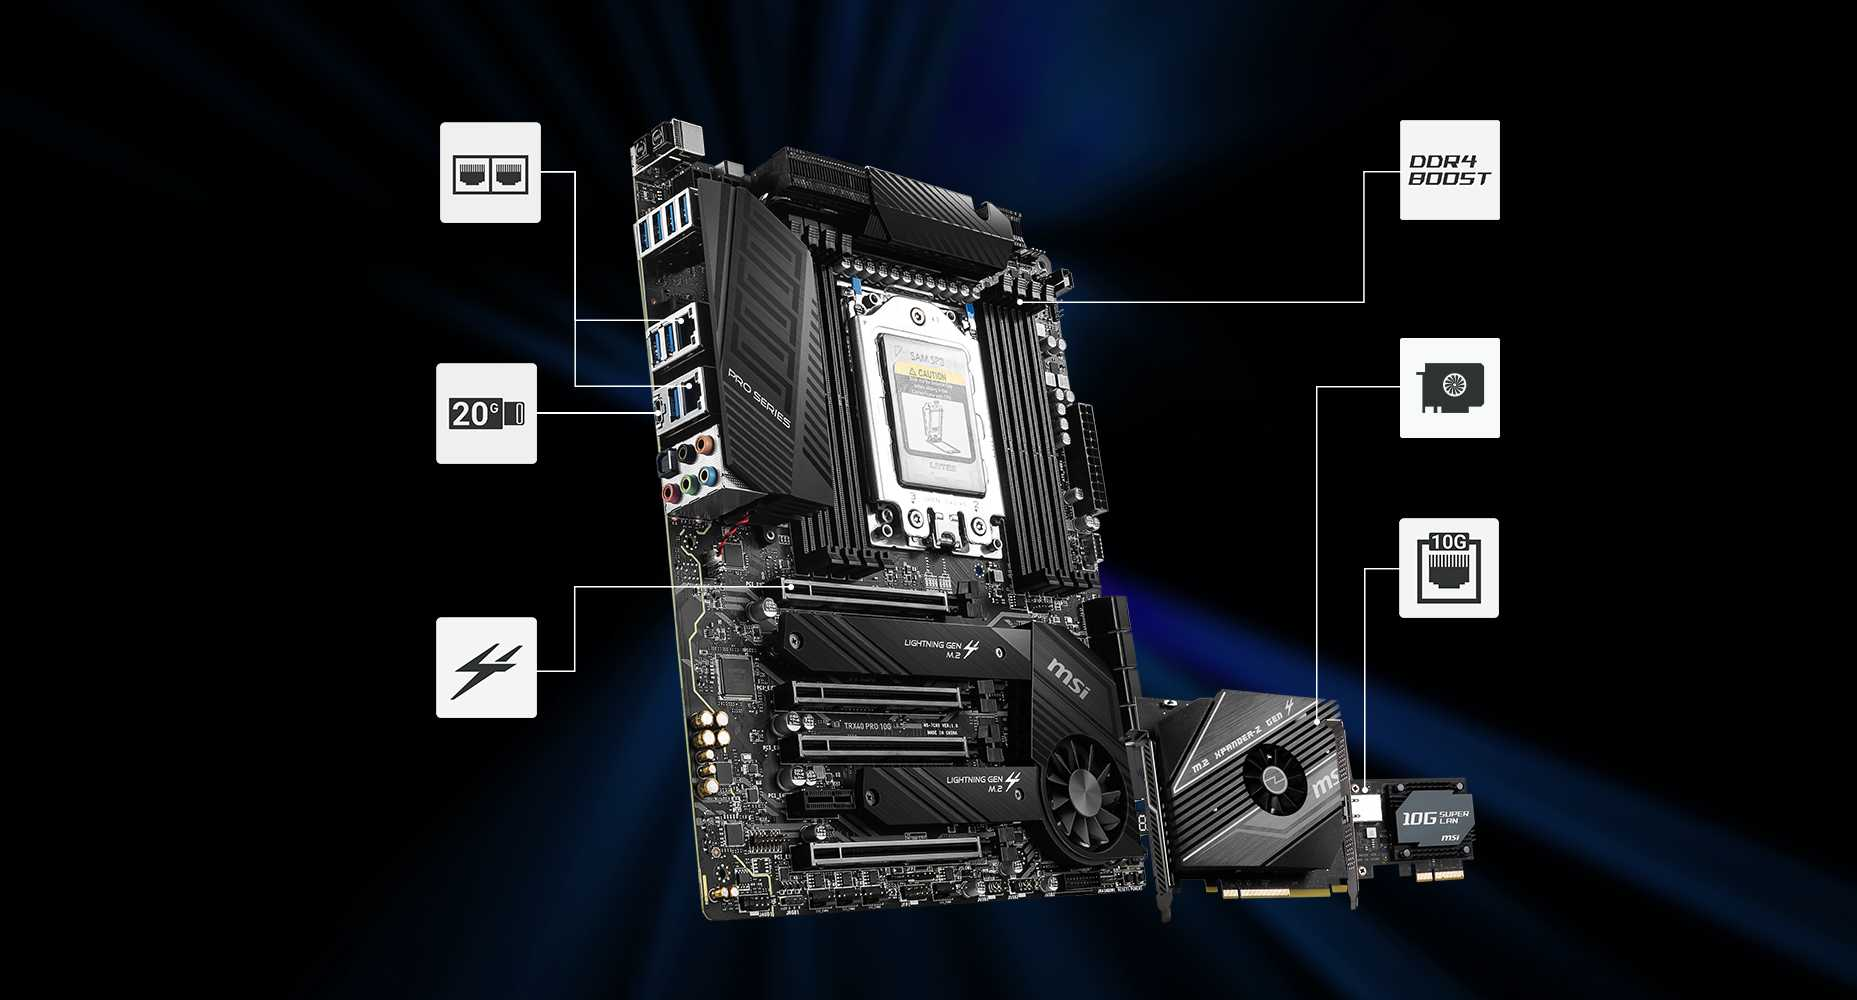 TRX40 PRO motherboard and a video card